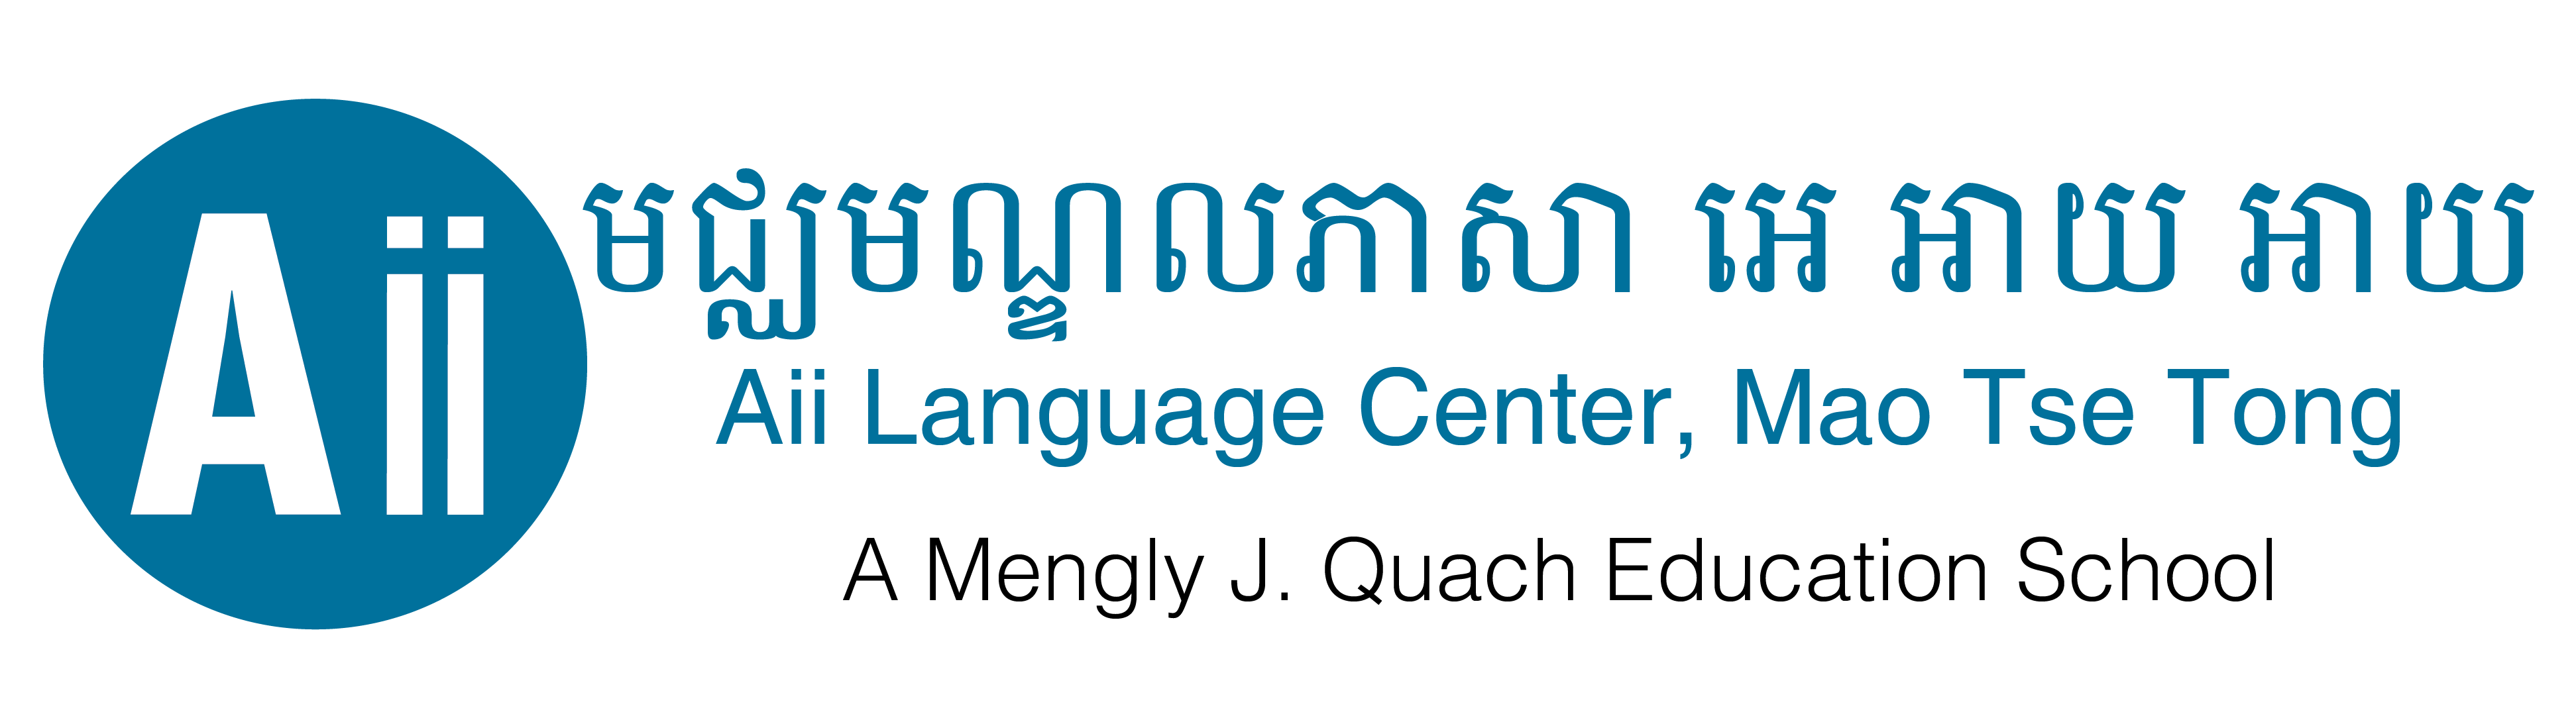 Aii Language Center | Mao Tse Tong Campus -